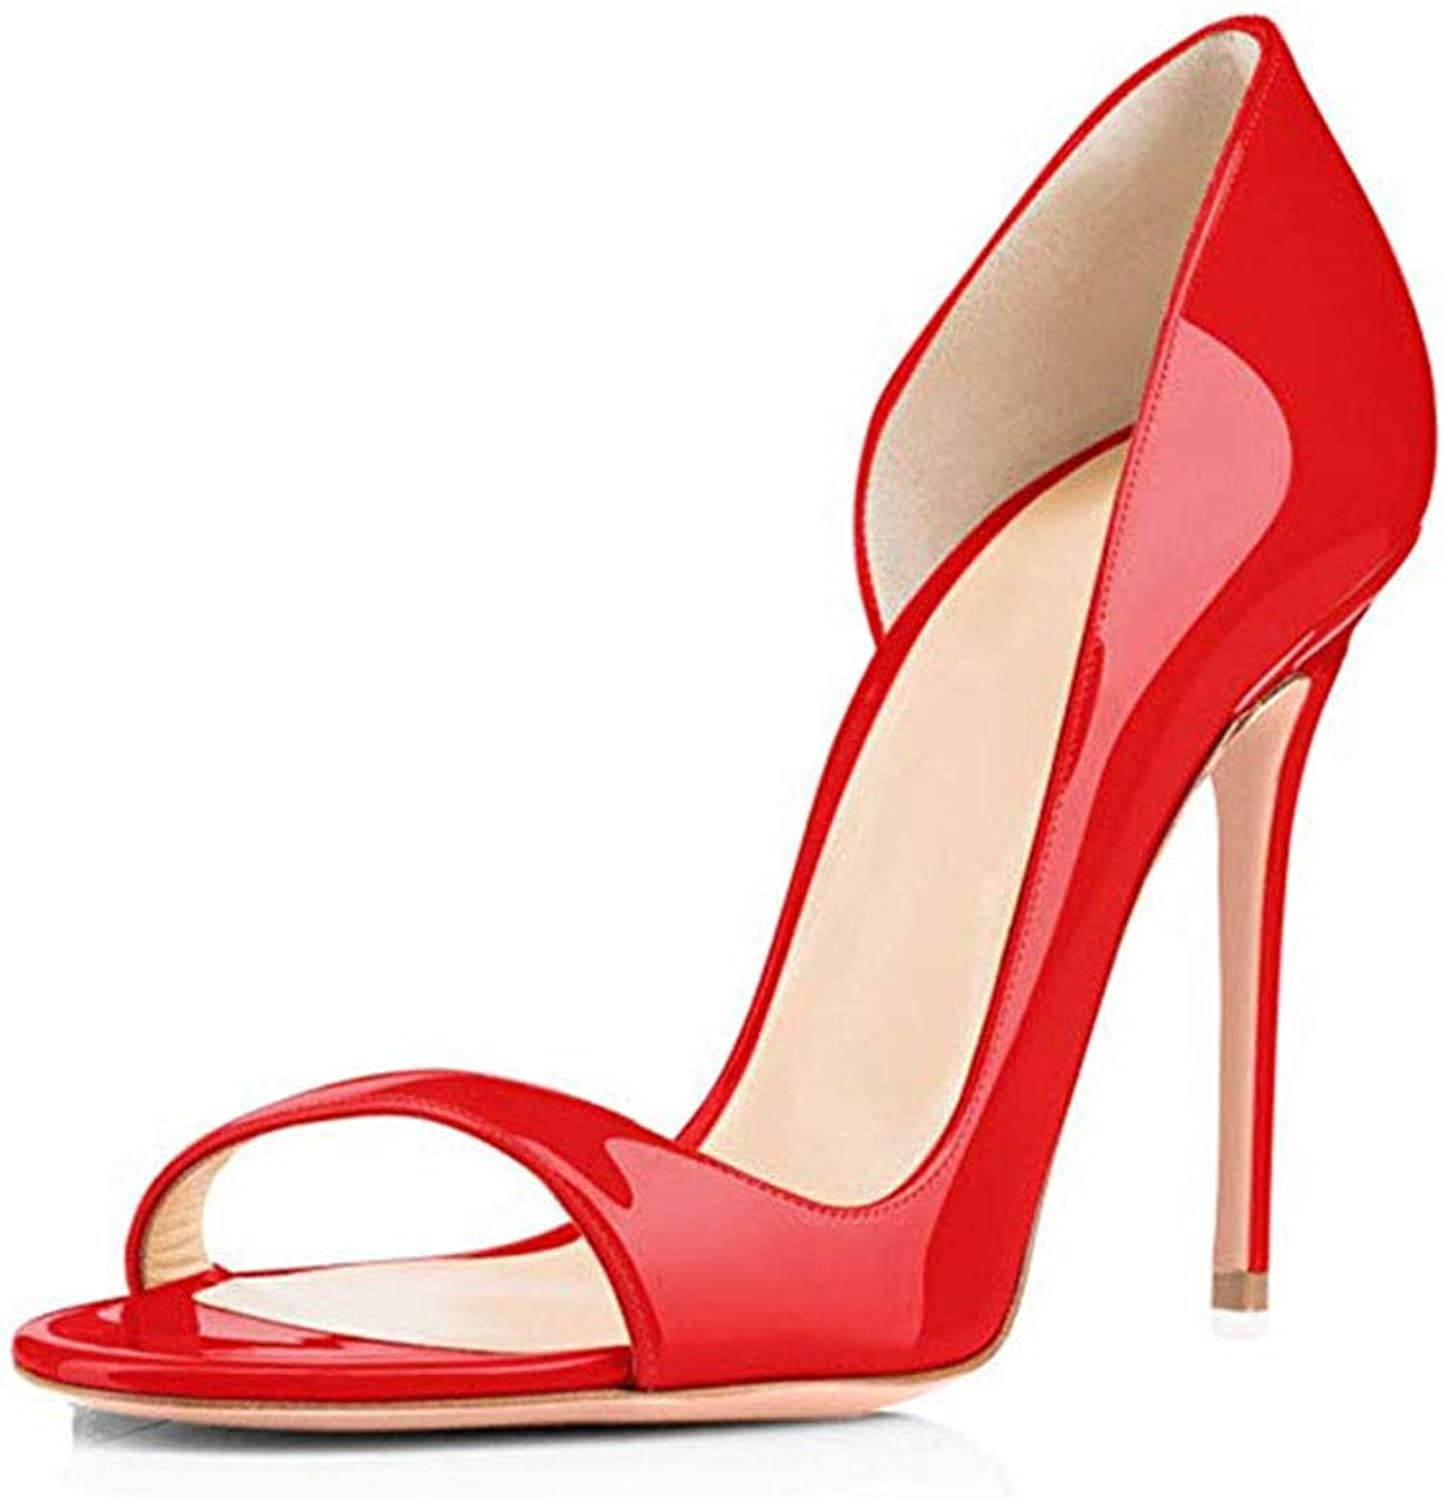 Women's high Heels, 2019 European and American Style Open Toe Lacquered high Heel Elegant Sexy Solid color Ladies Sandals,a,36